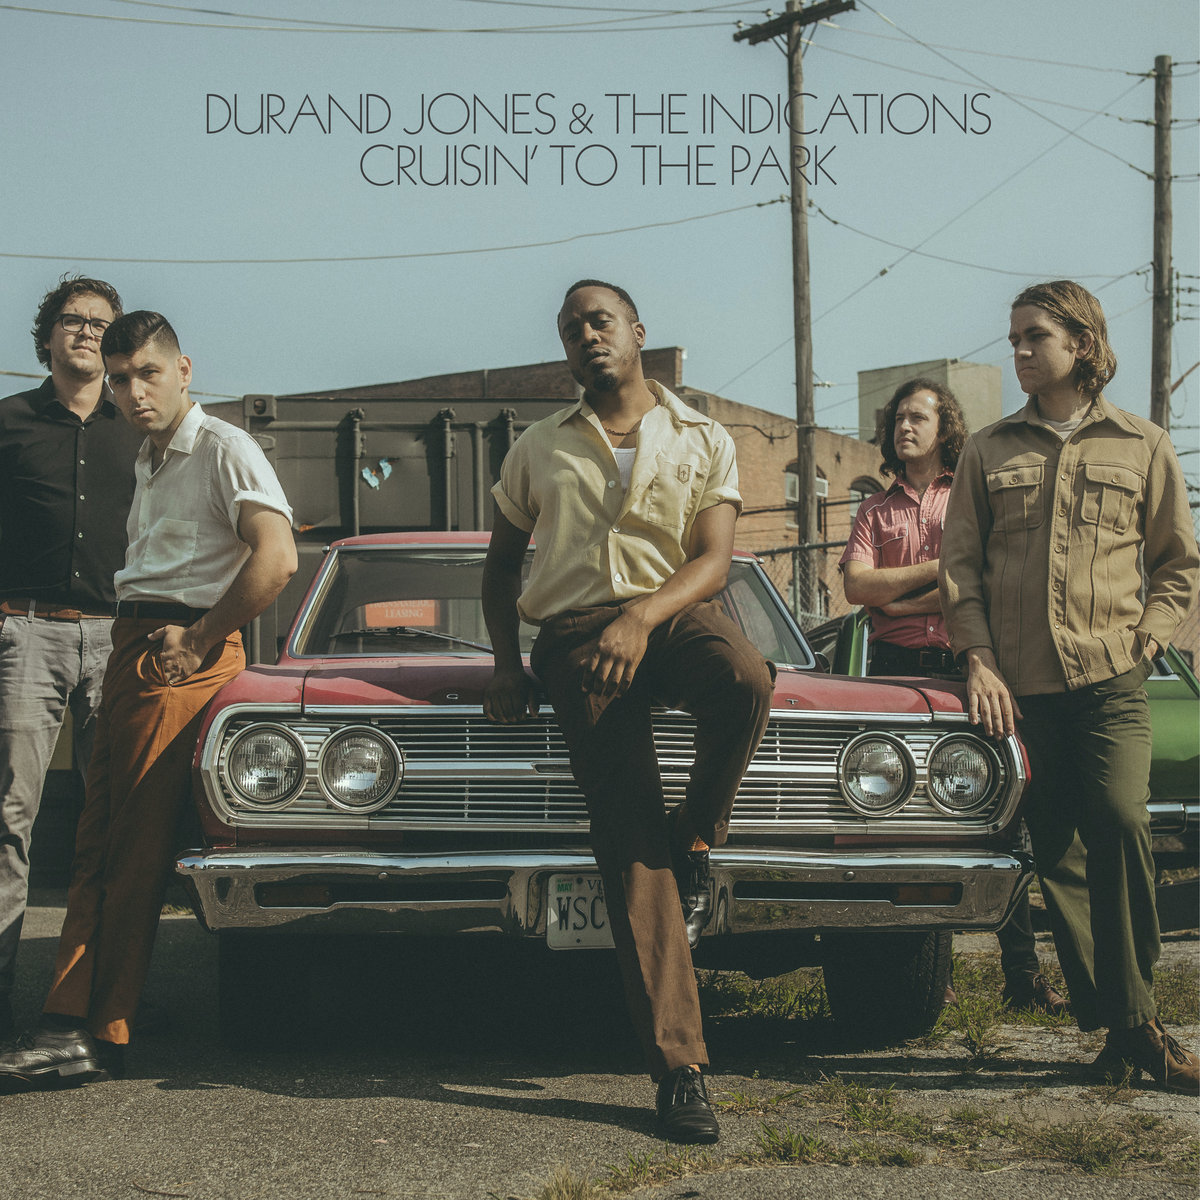 durand jones and the indications.jpg